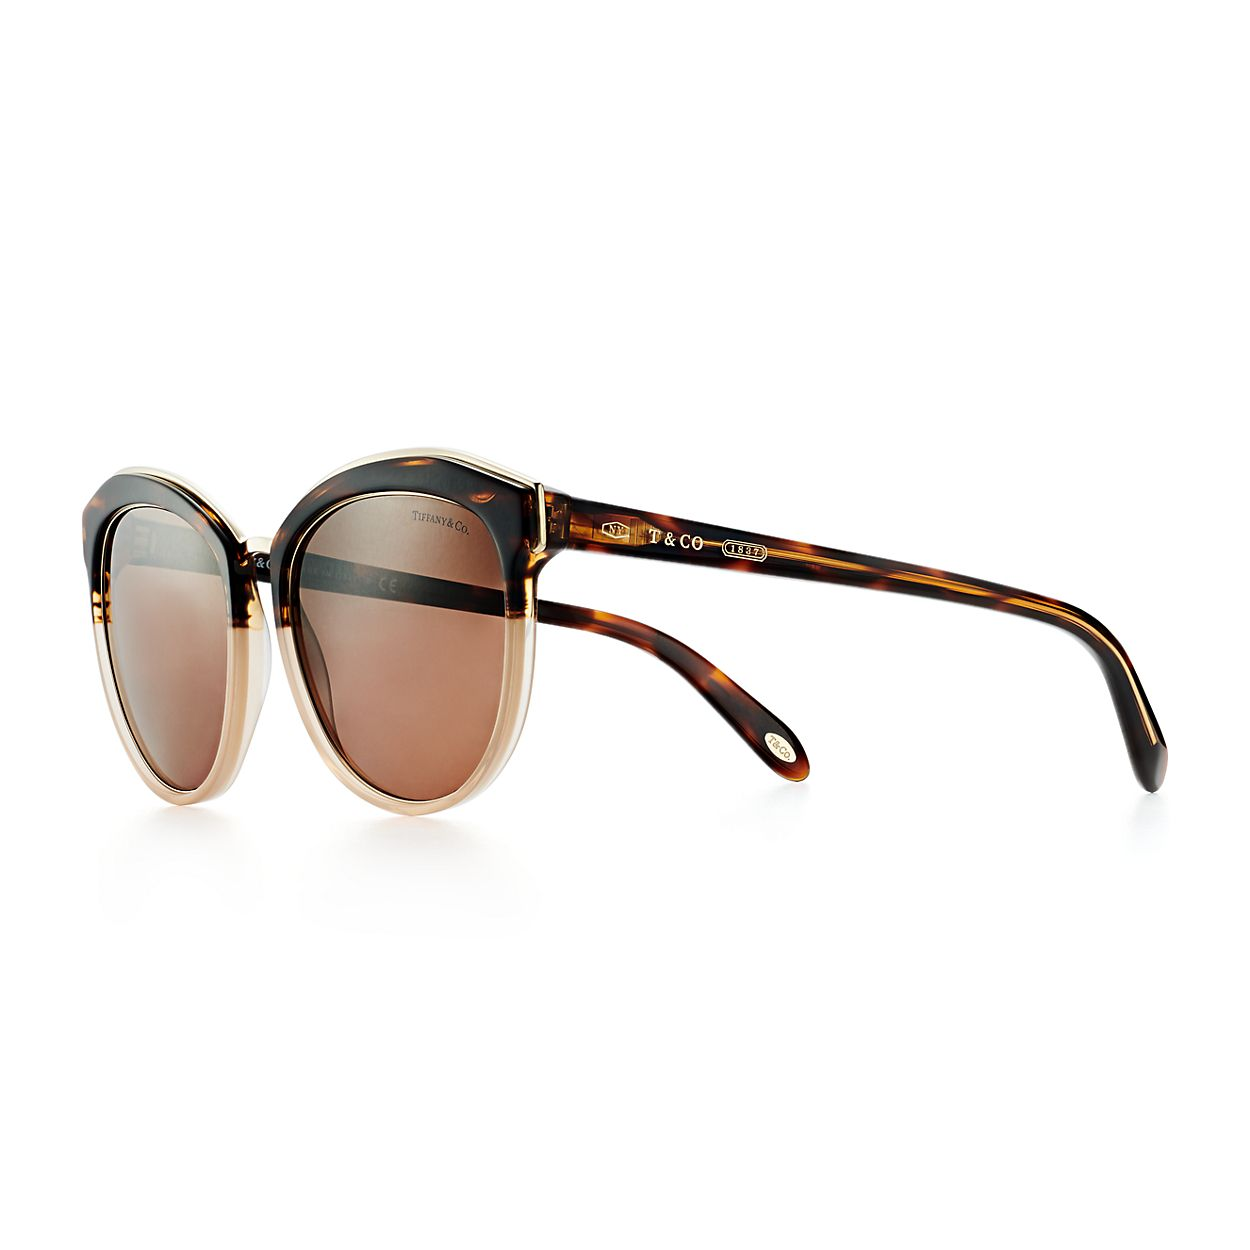 579b72cb1a6 Tiffany 1837™ round sunglasses in tortoise and camel acetate ...